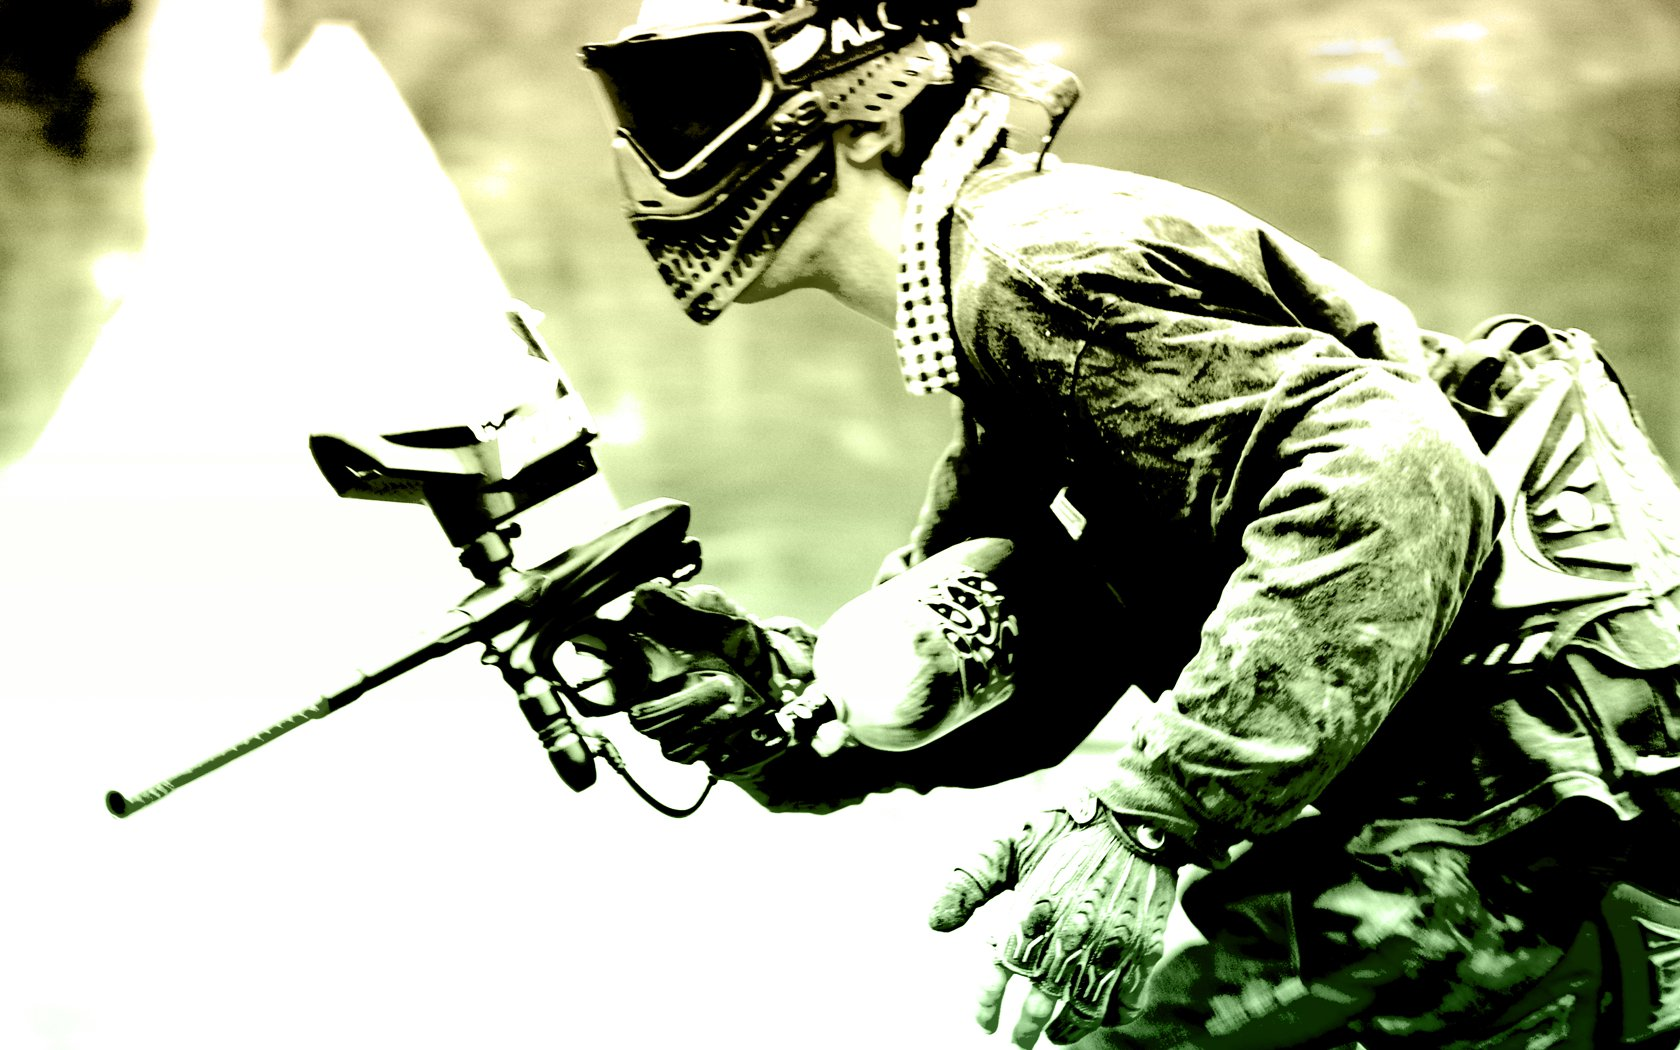 Welcome to your paintball headquarters - paint the competition